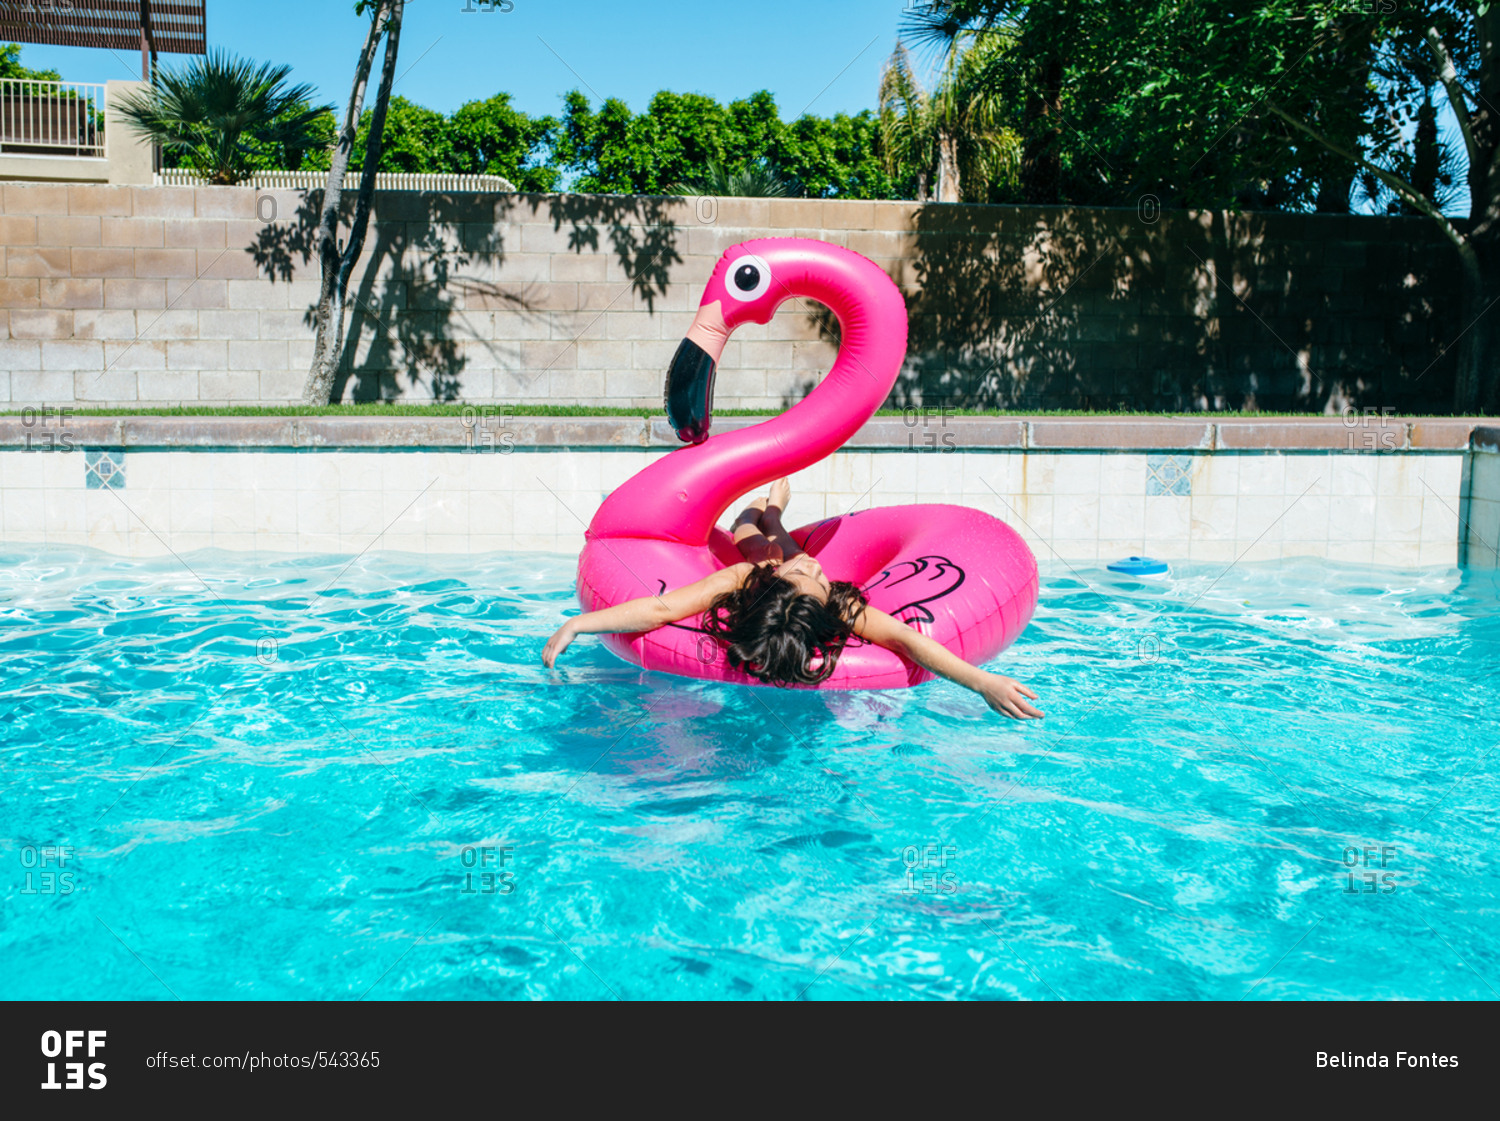 Girl lounging on flamingo float in pool stock photo offset for Pool floats design raises questions